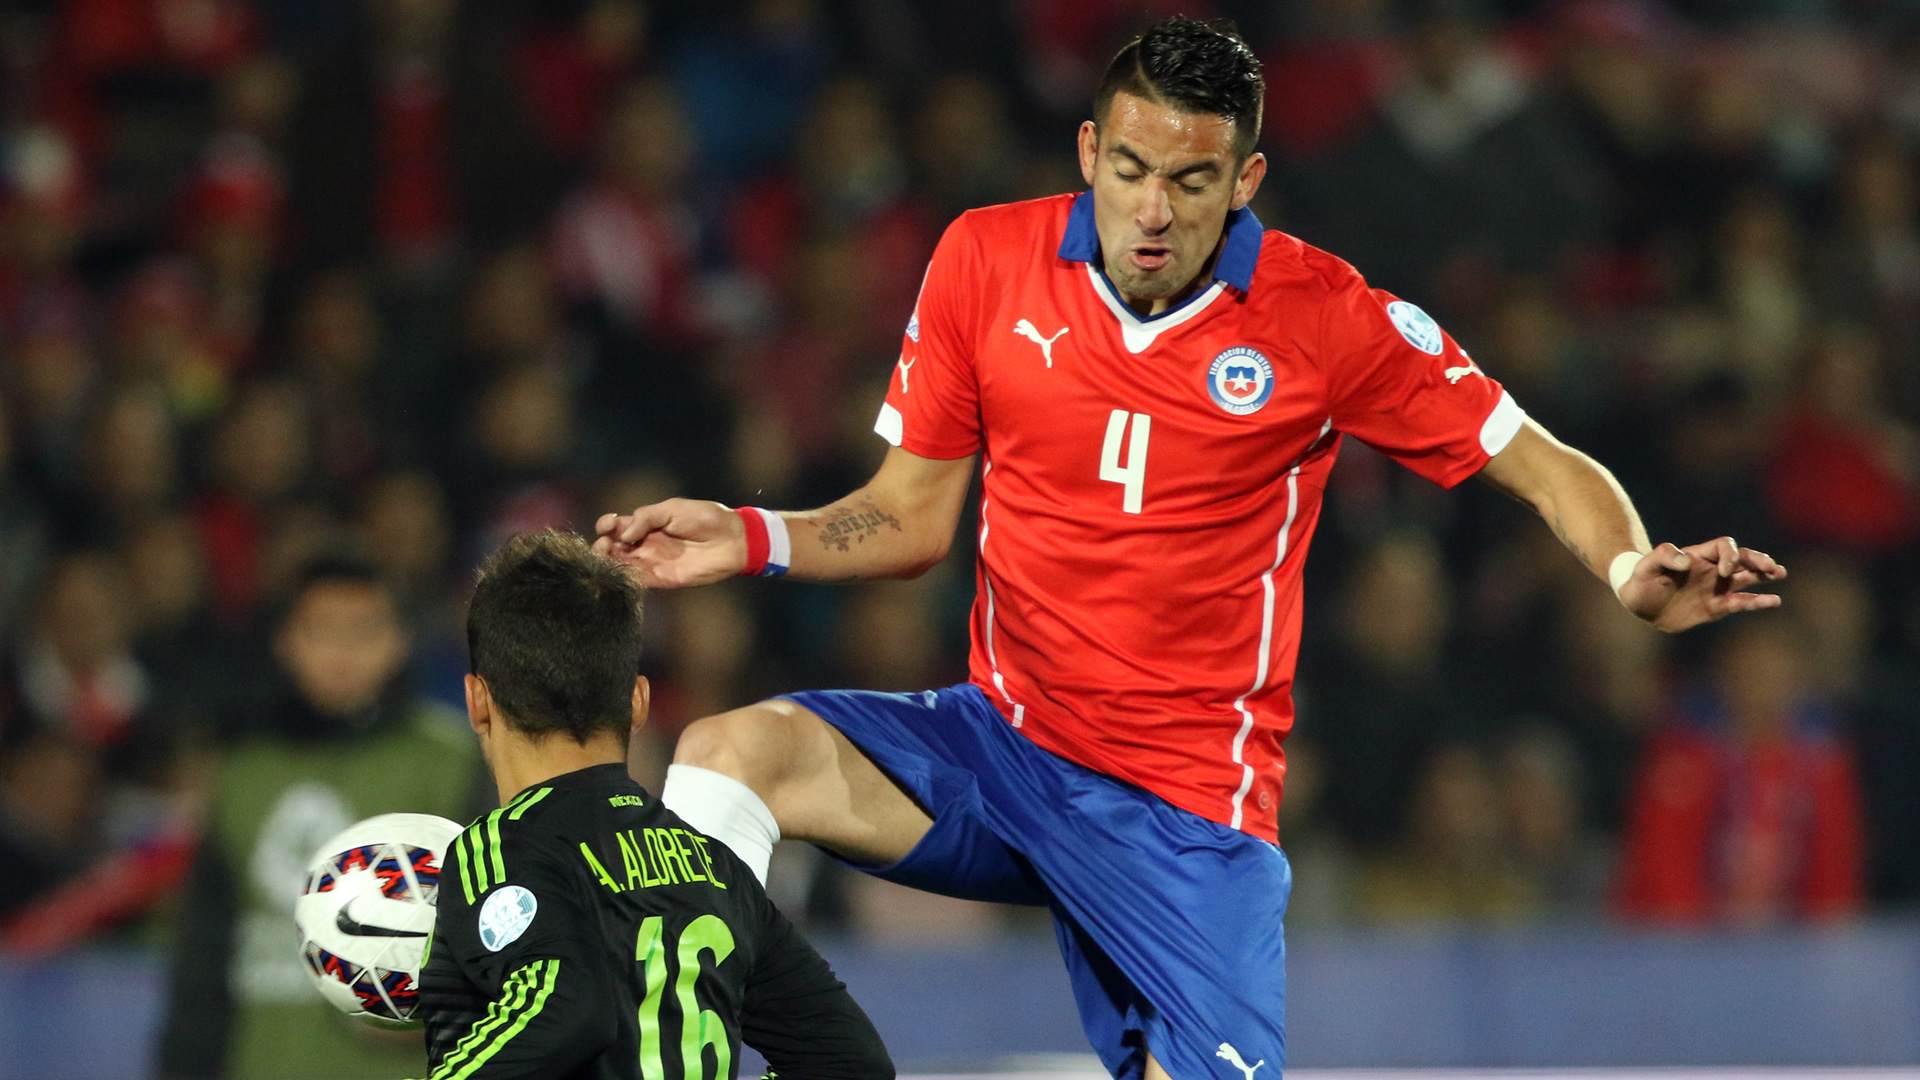 chile-mexico-copa-america-15062015_jcs8ejpbs9by16xf1d4wmyhh0